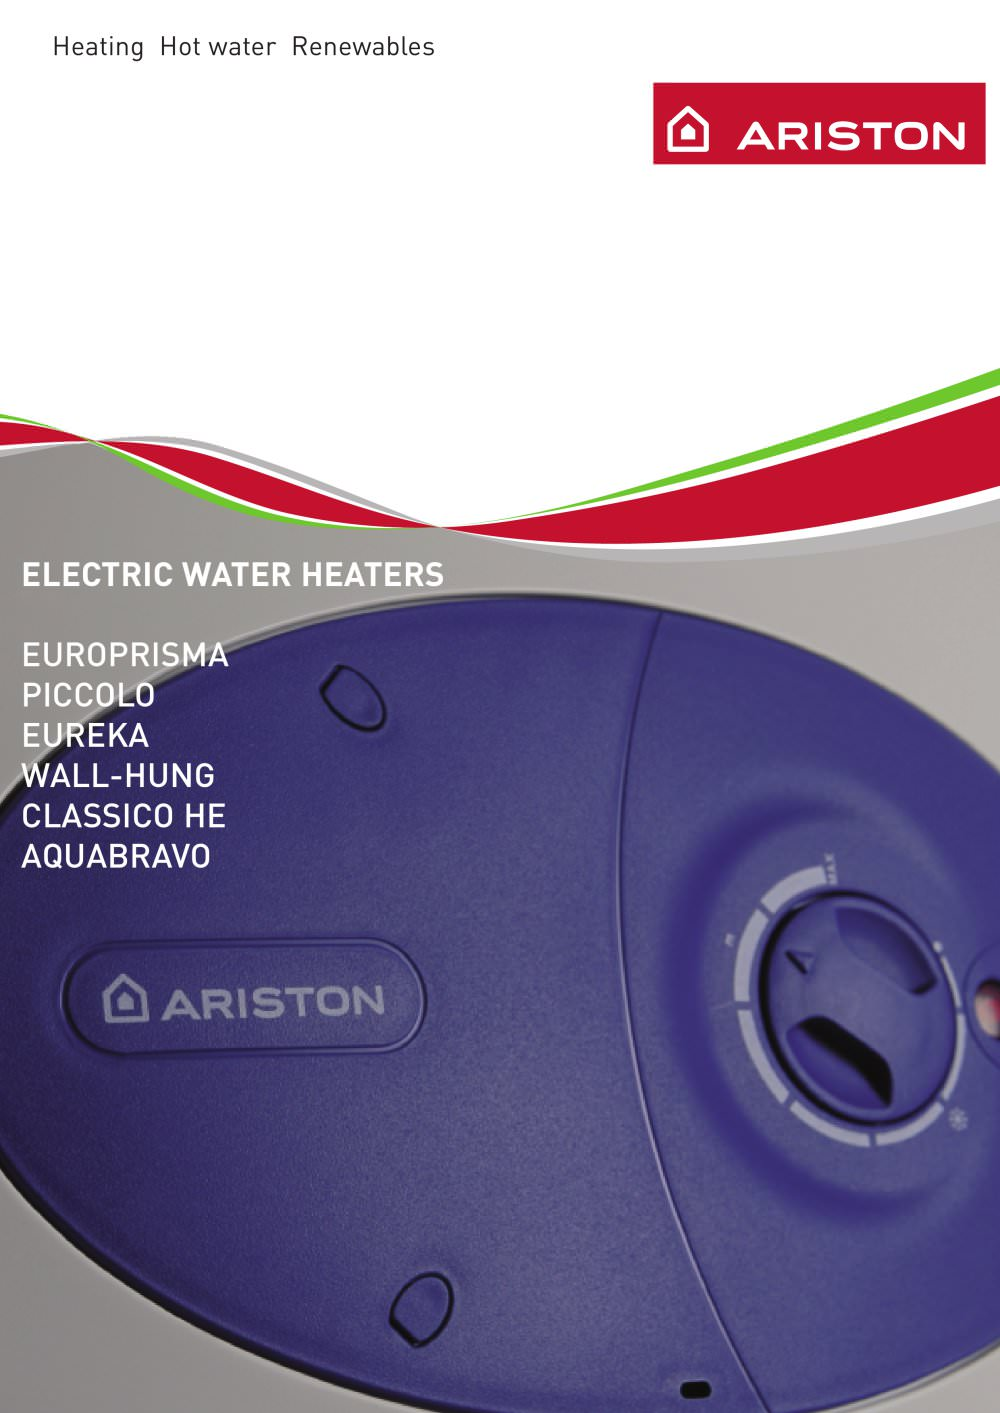 Electric water heaters Ariston (Ariston): the device and a lineup